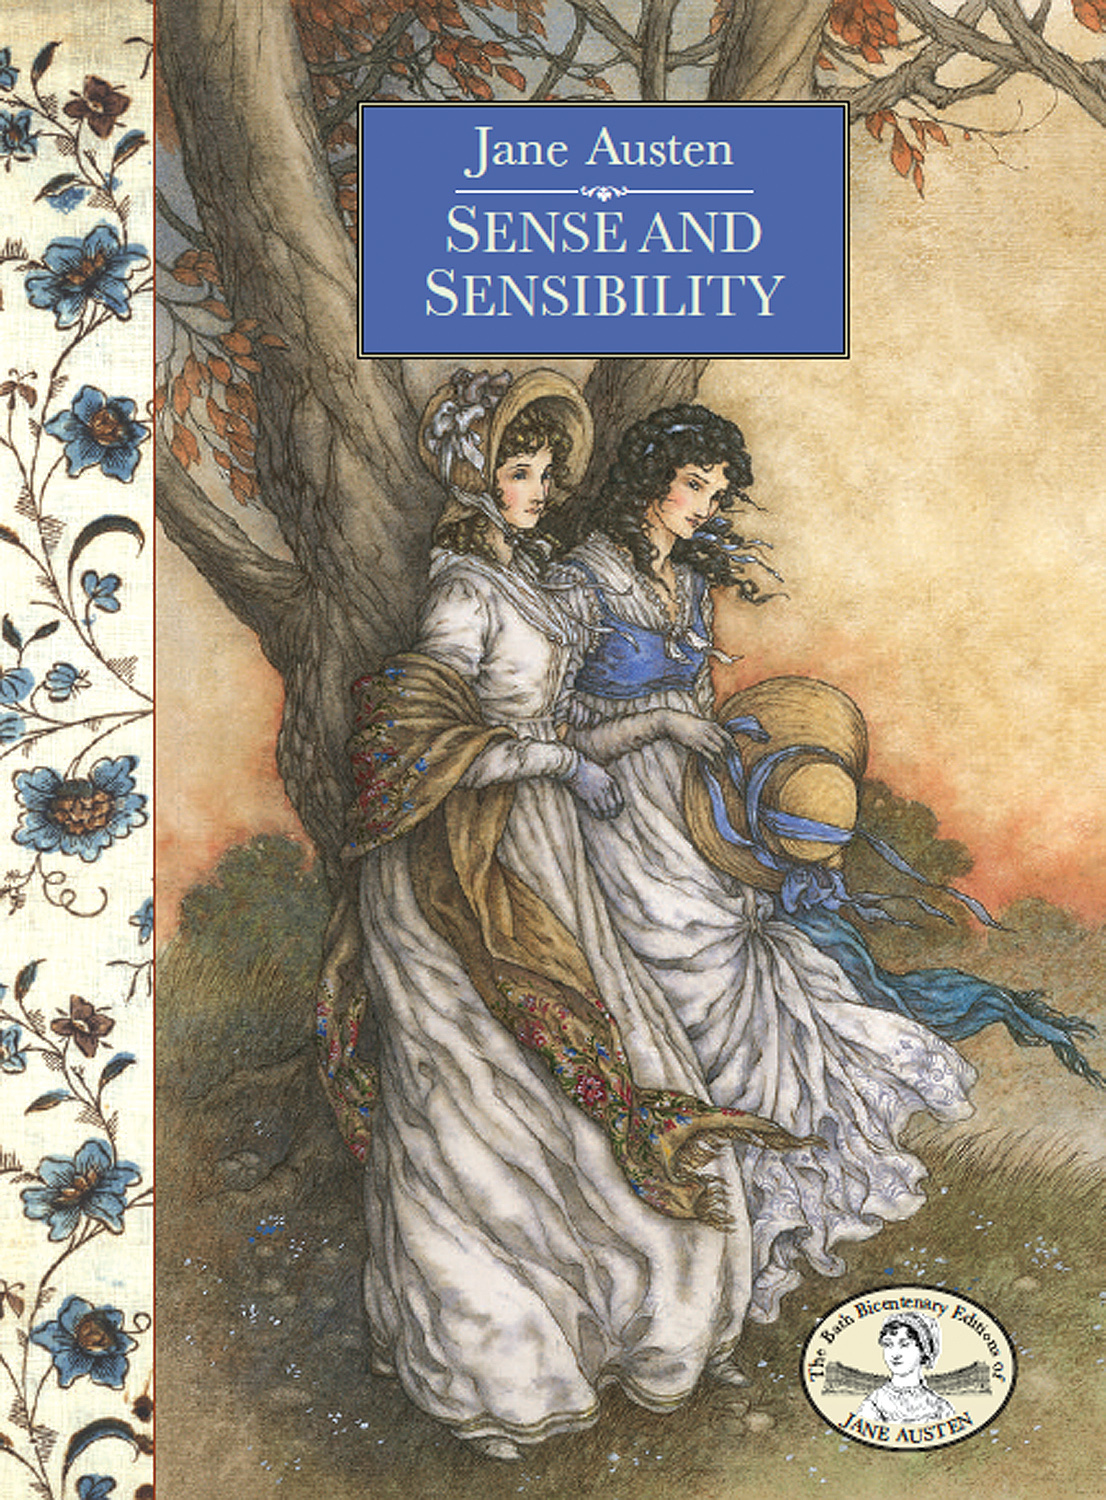 a book report on sense and sensibility by jane austen Jane austen's sweepingly romantic masterpiece continues to delight generation after generation of readers beautifully presented for a modern teen audience, this is the must-have edition of a timeless classic.